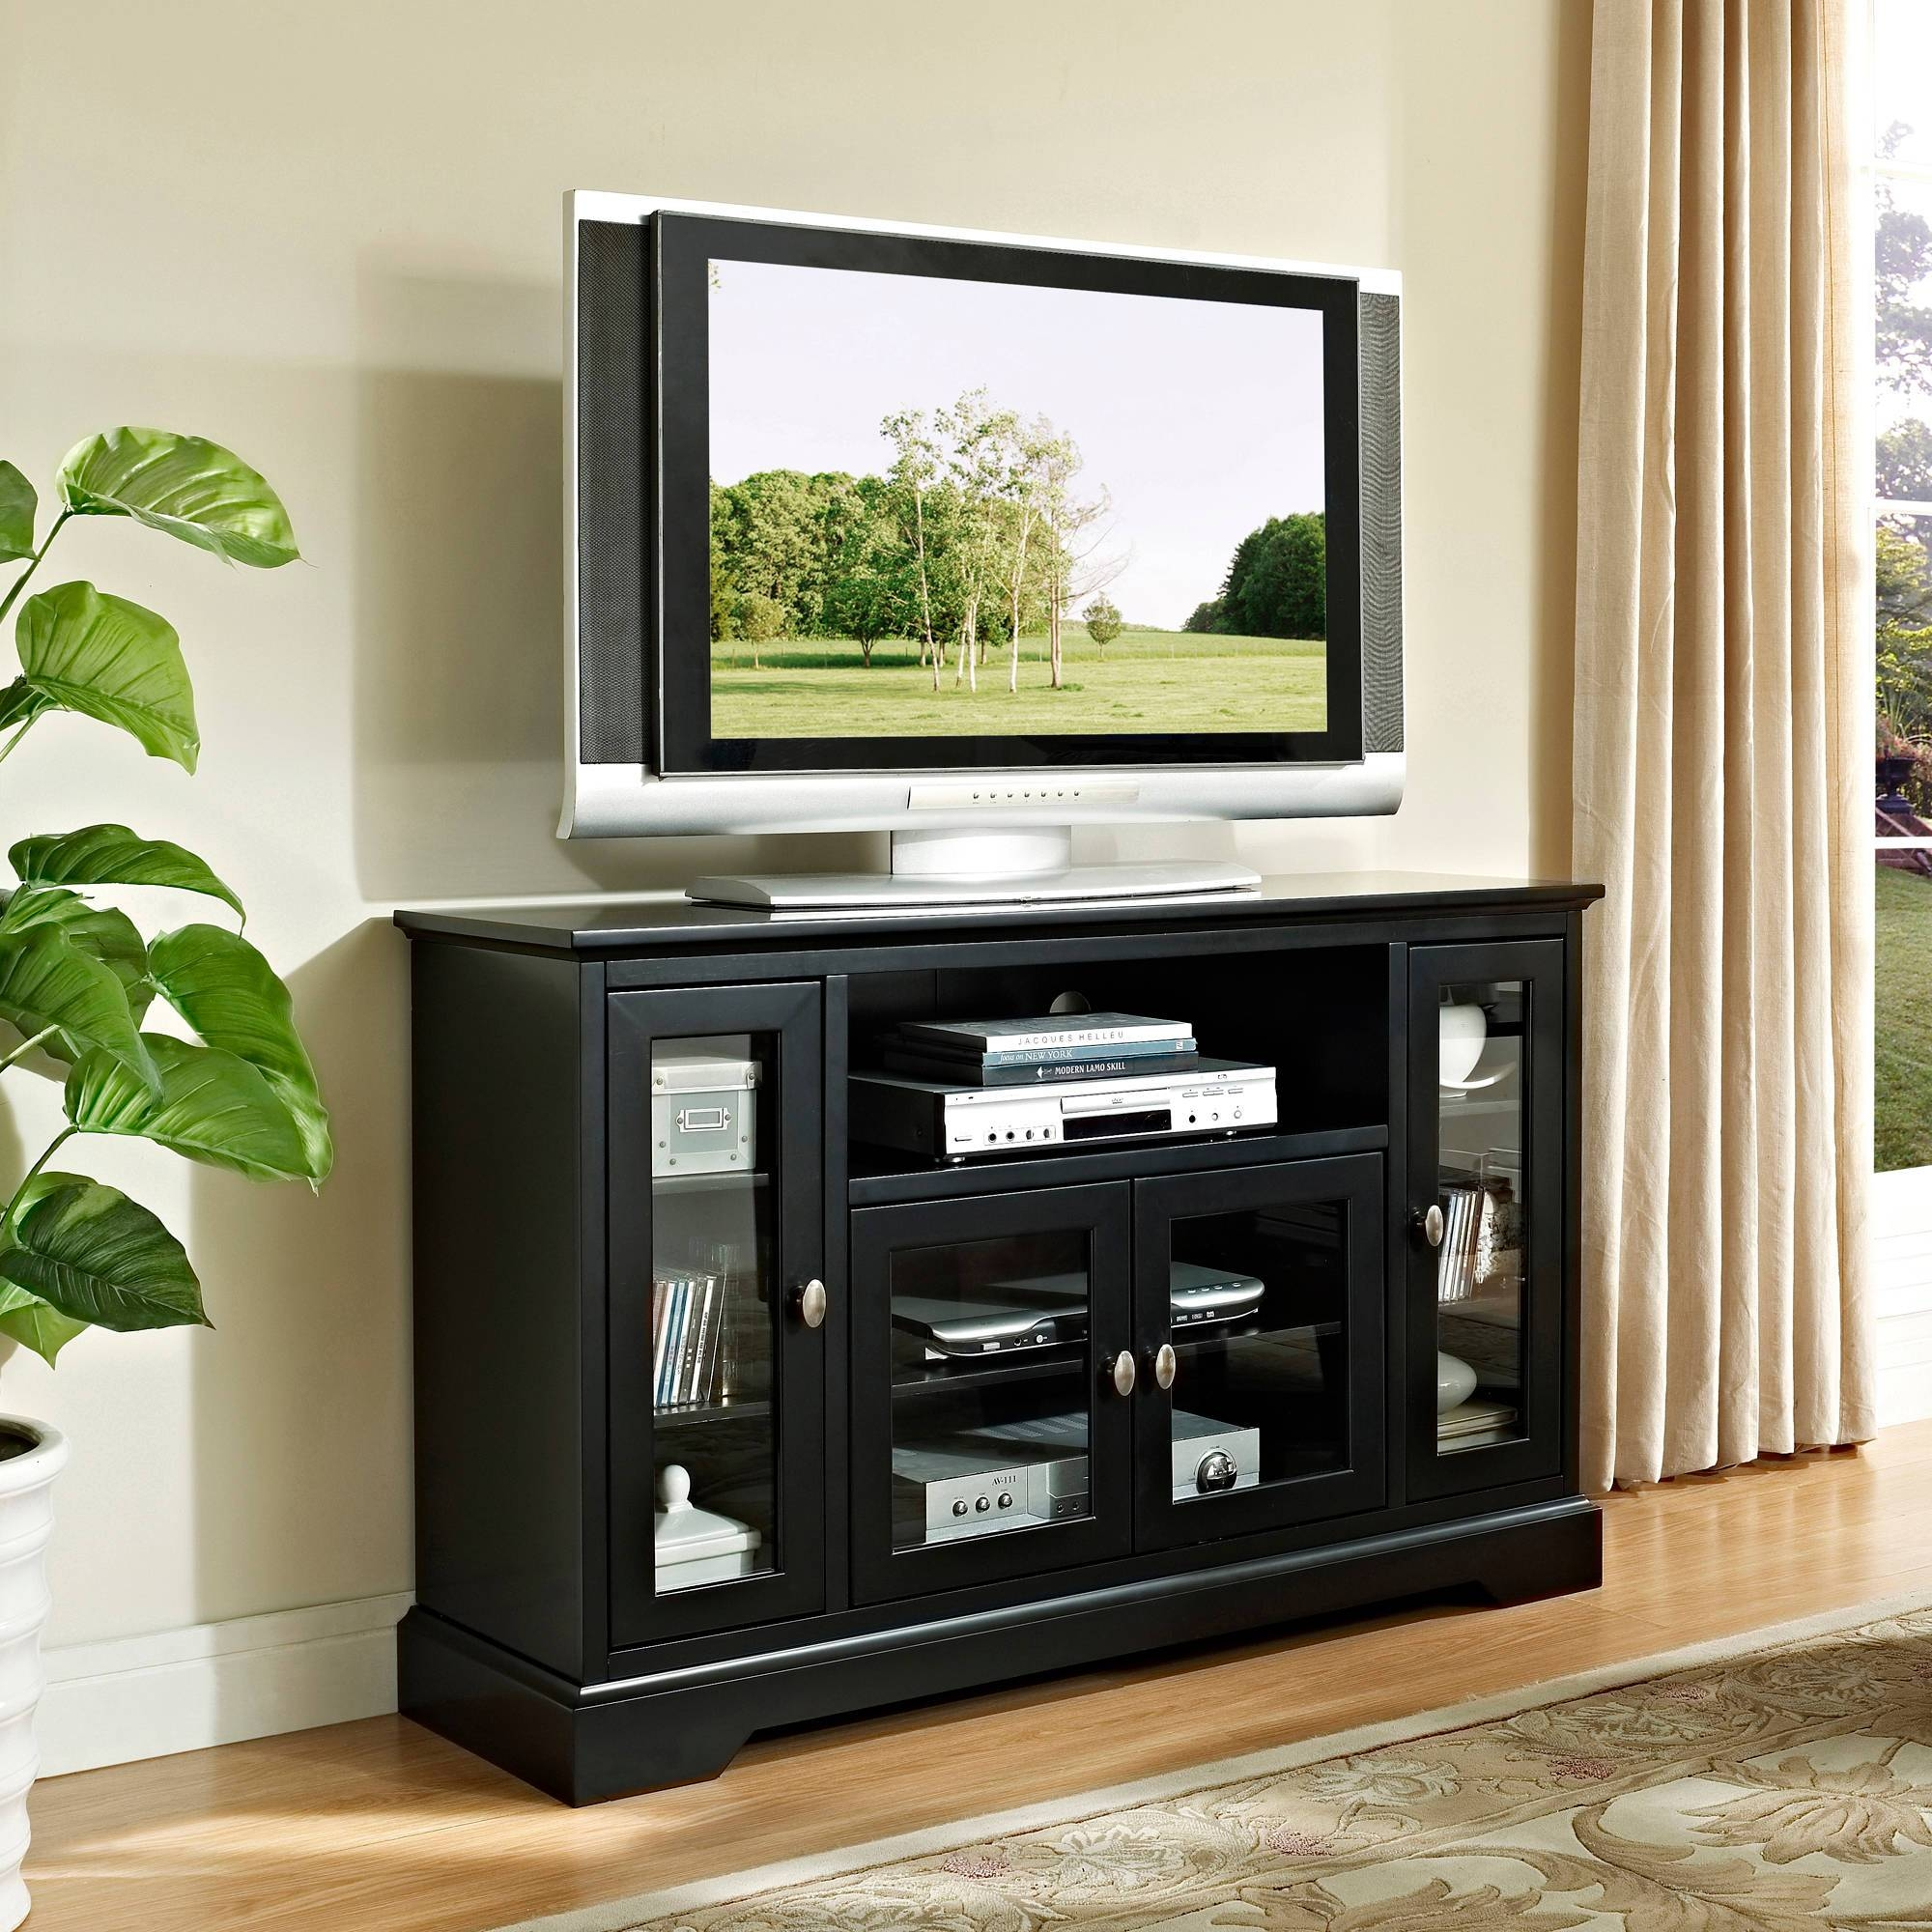 "Walker Edison Highboy-Style Tv Stand For Tvs Up To 55"", Muliple with regard to Tall Tv Cabinets Corner Unit (Image 14 of 15)"